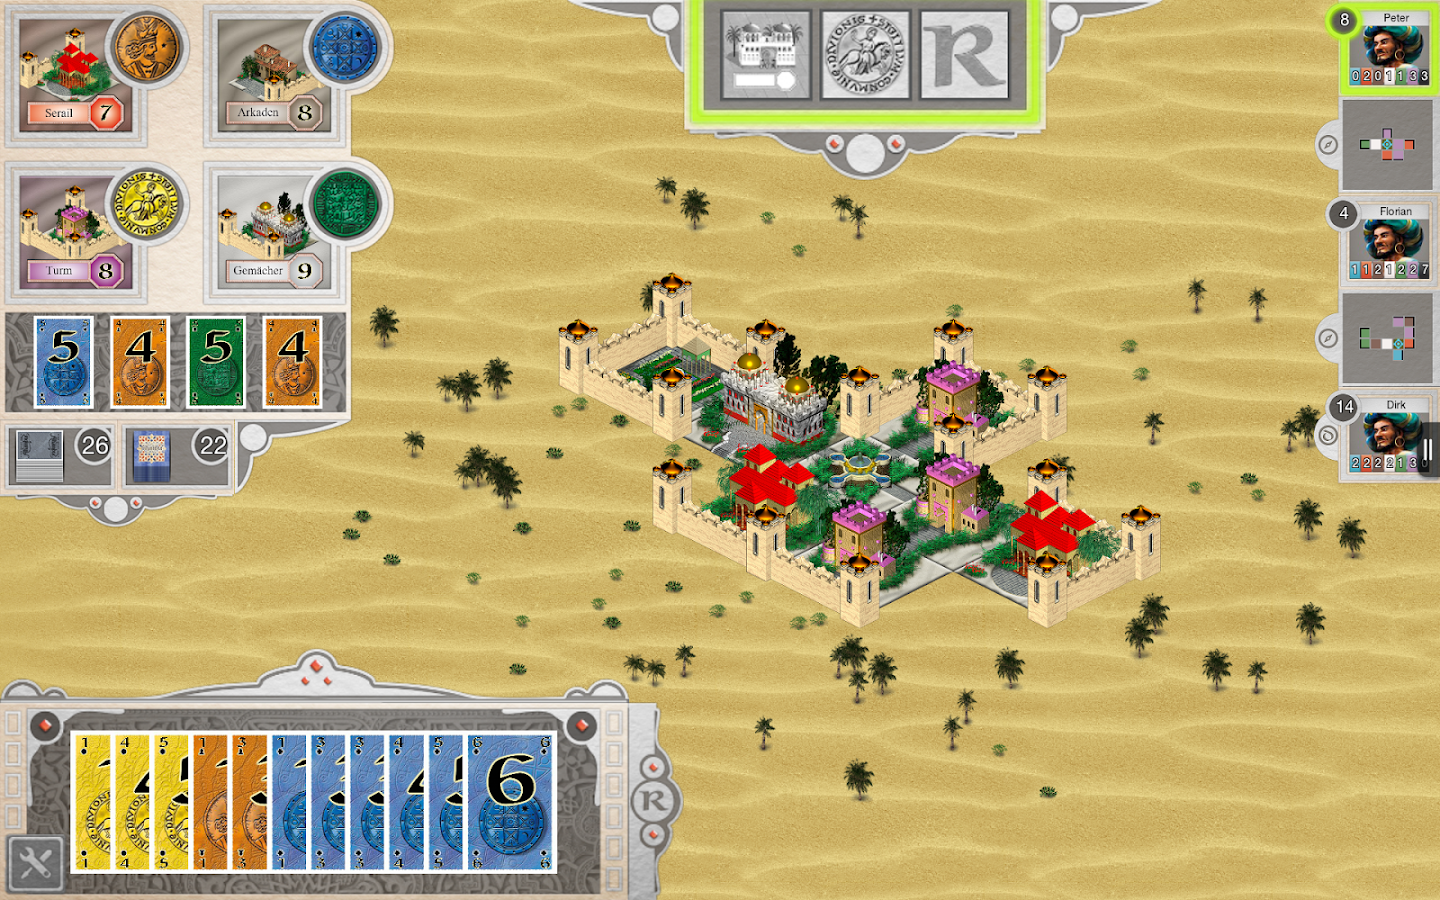 Alhambra Game Screenshot 6